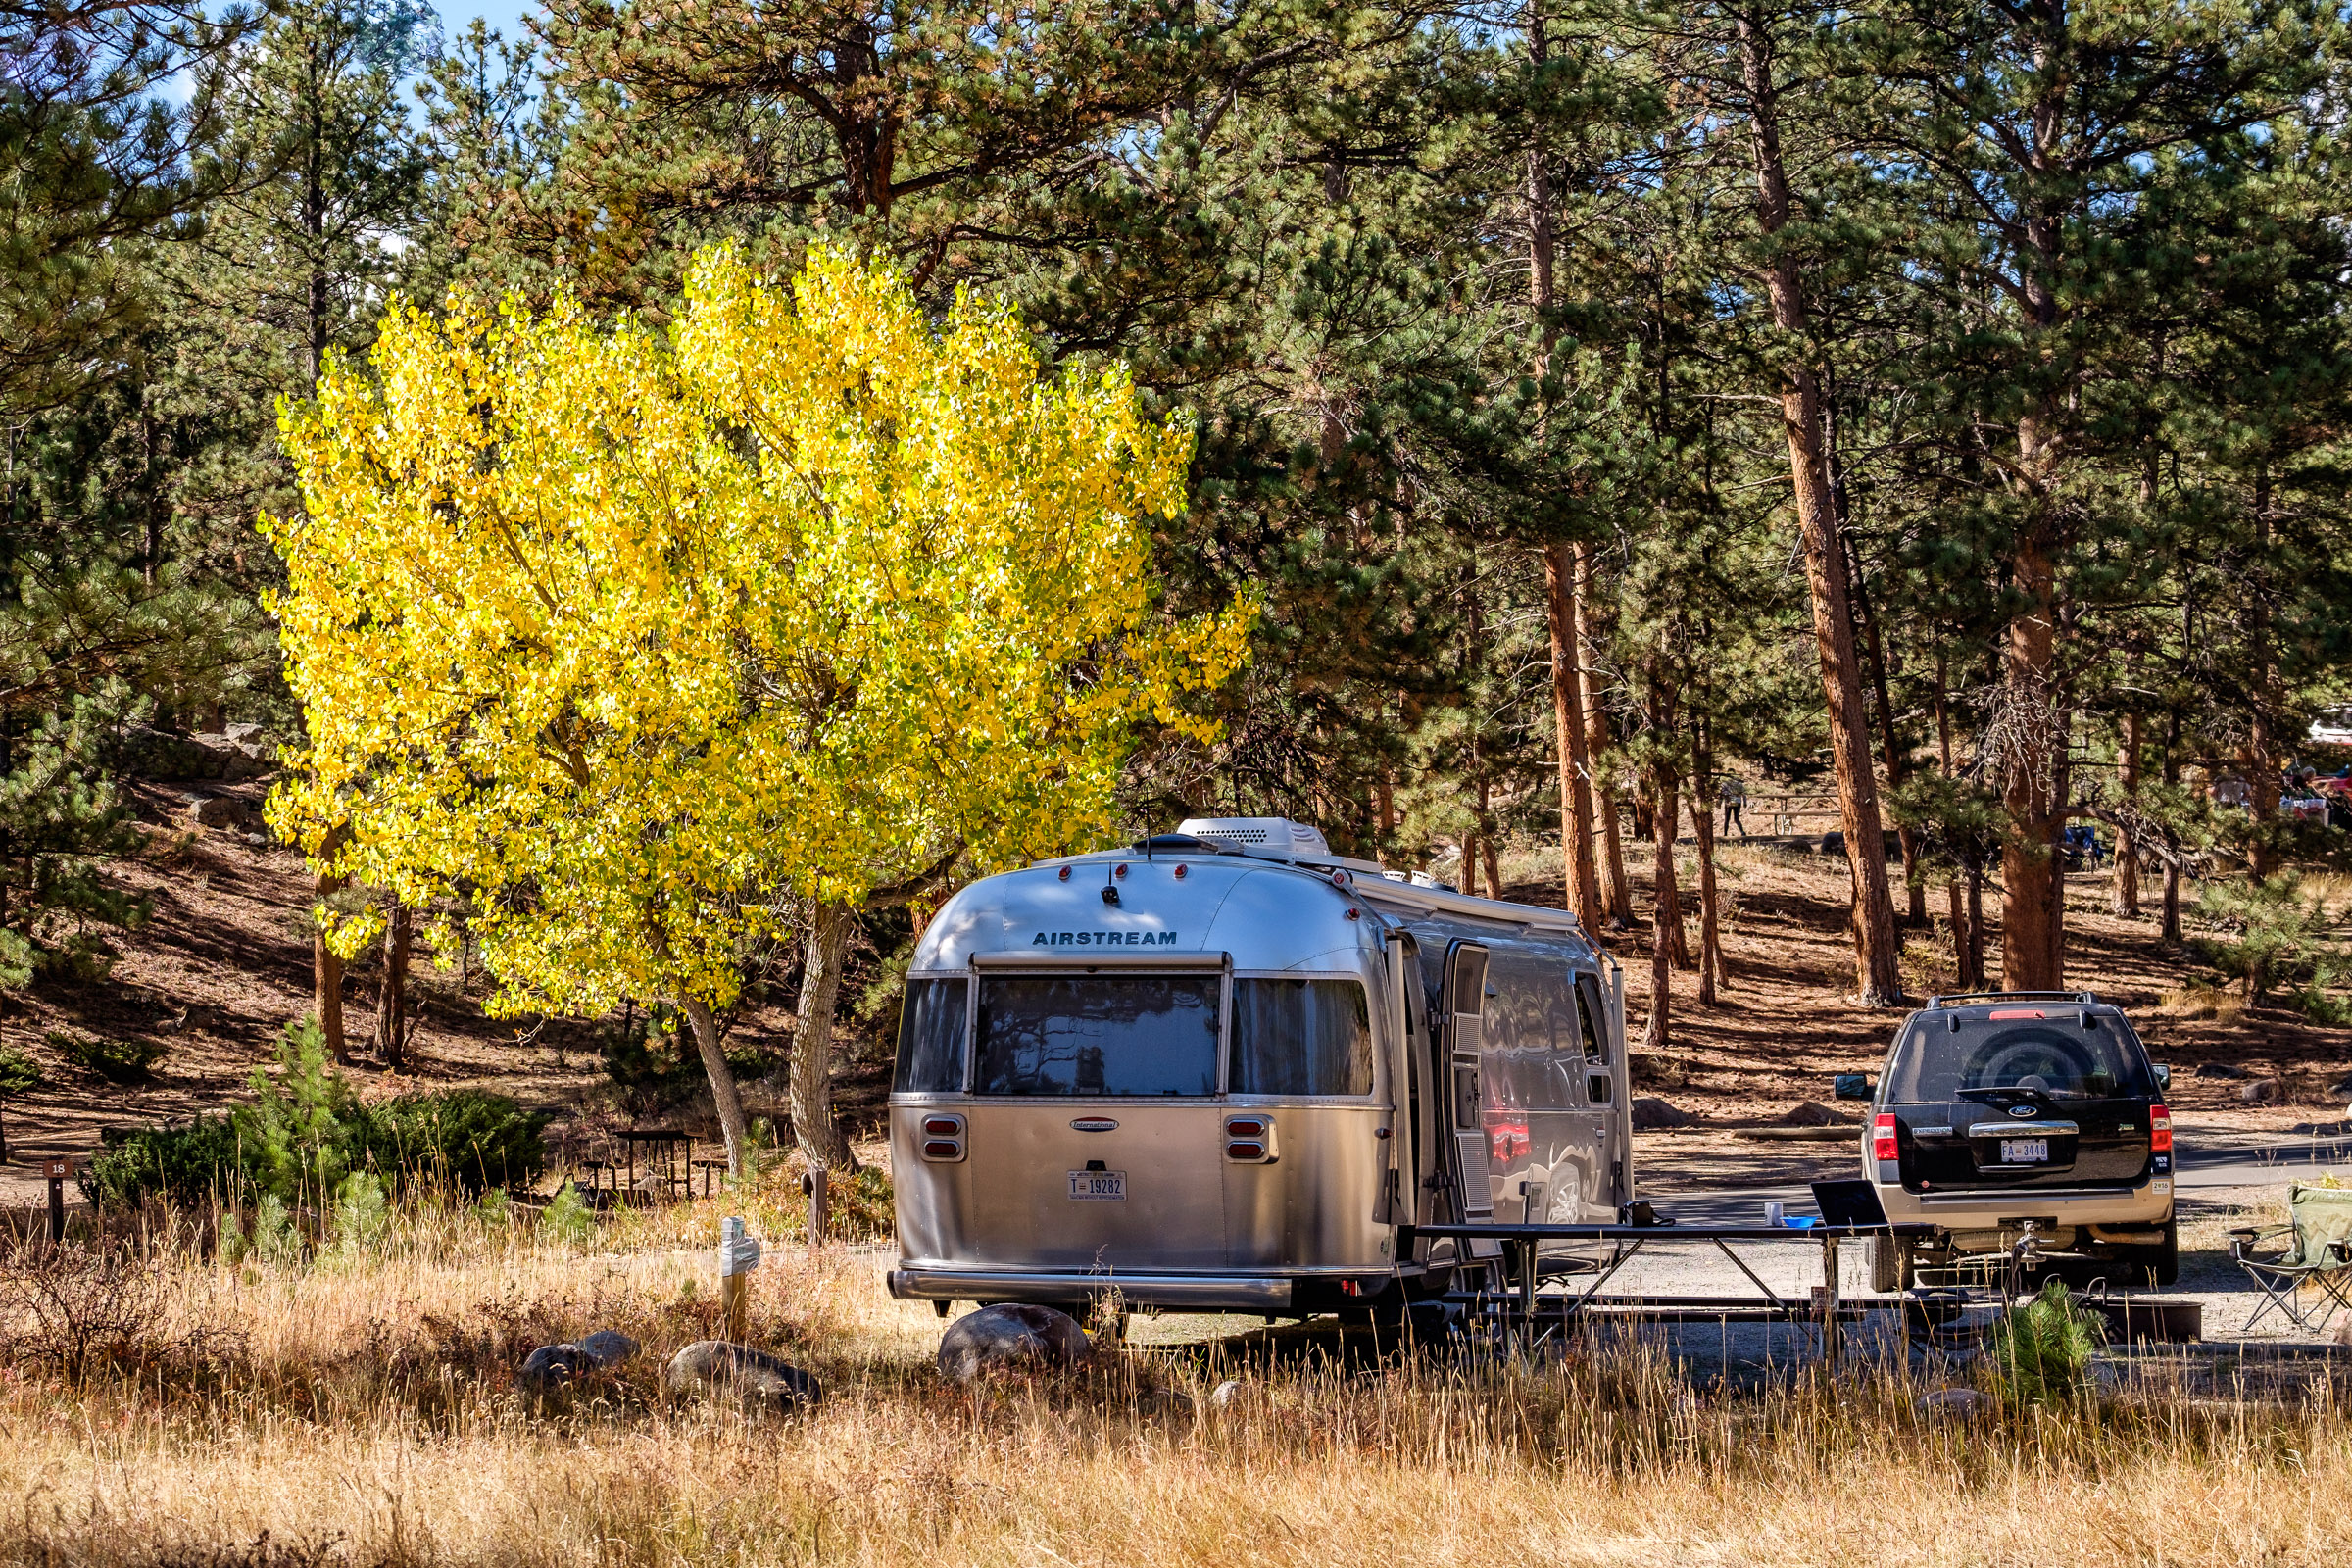 Lots of space for Wally the Airstream at the Moraine Park Campground.